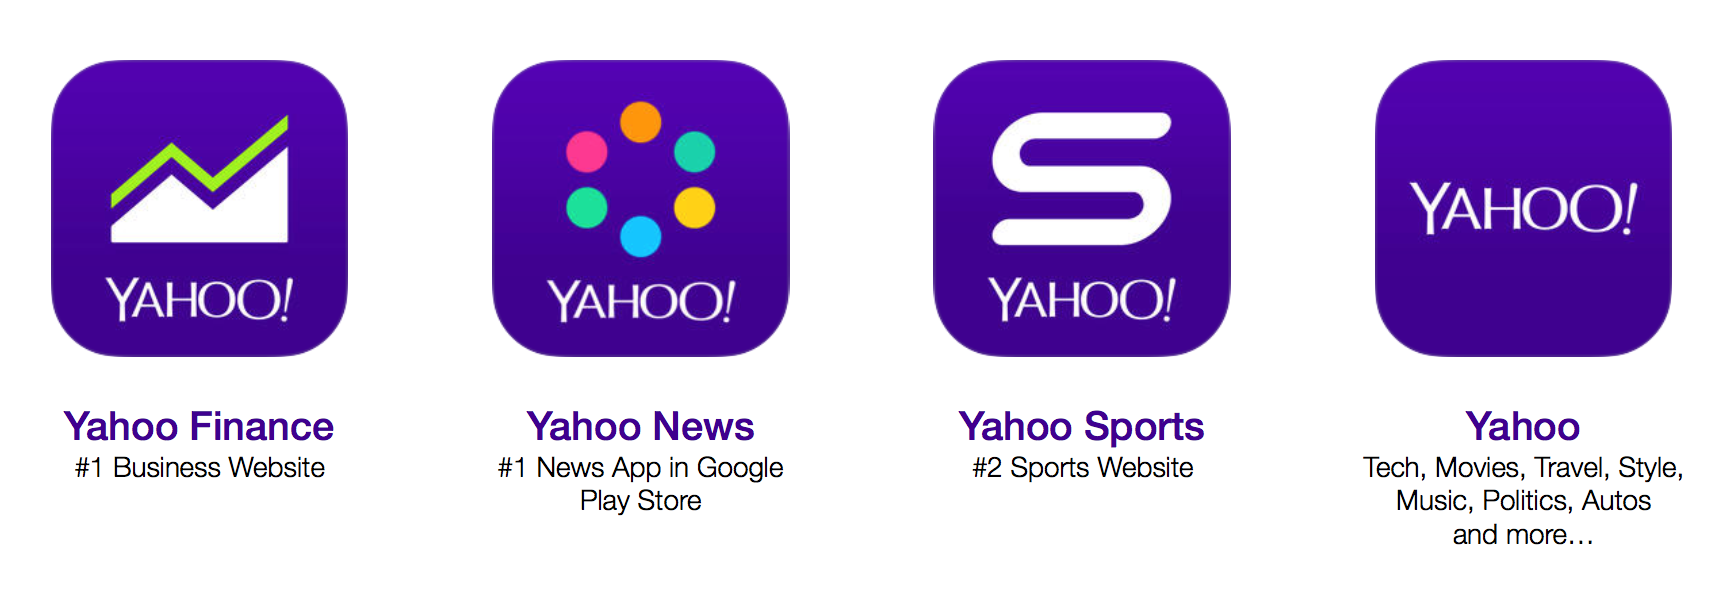 Yahoo news - Product Yahoo Content Teasers